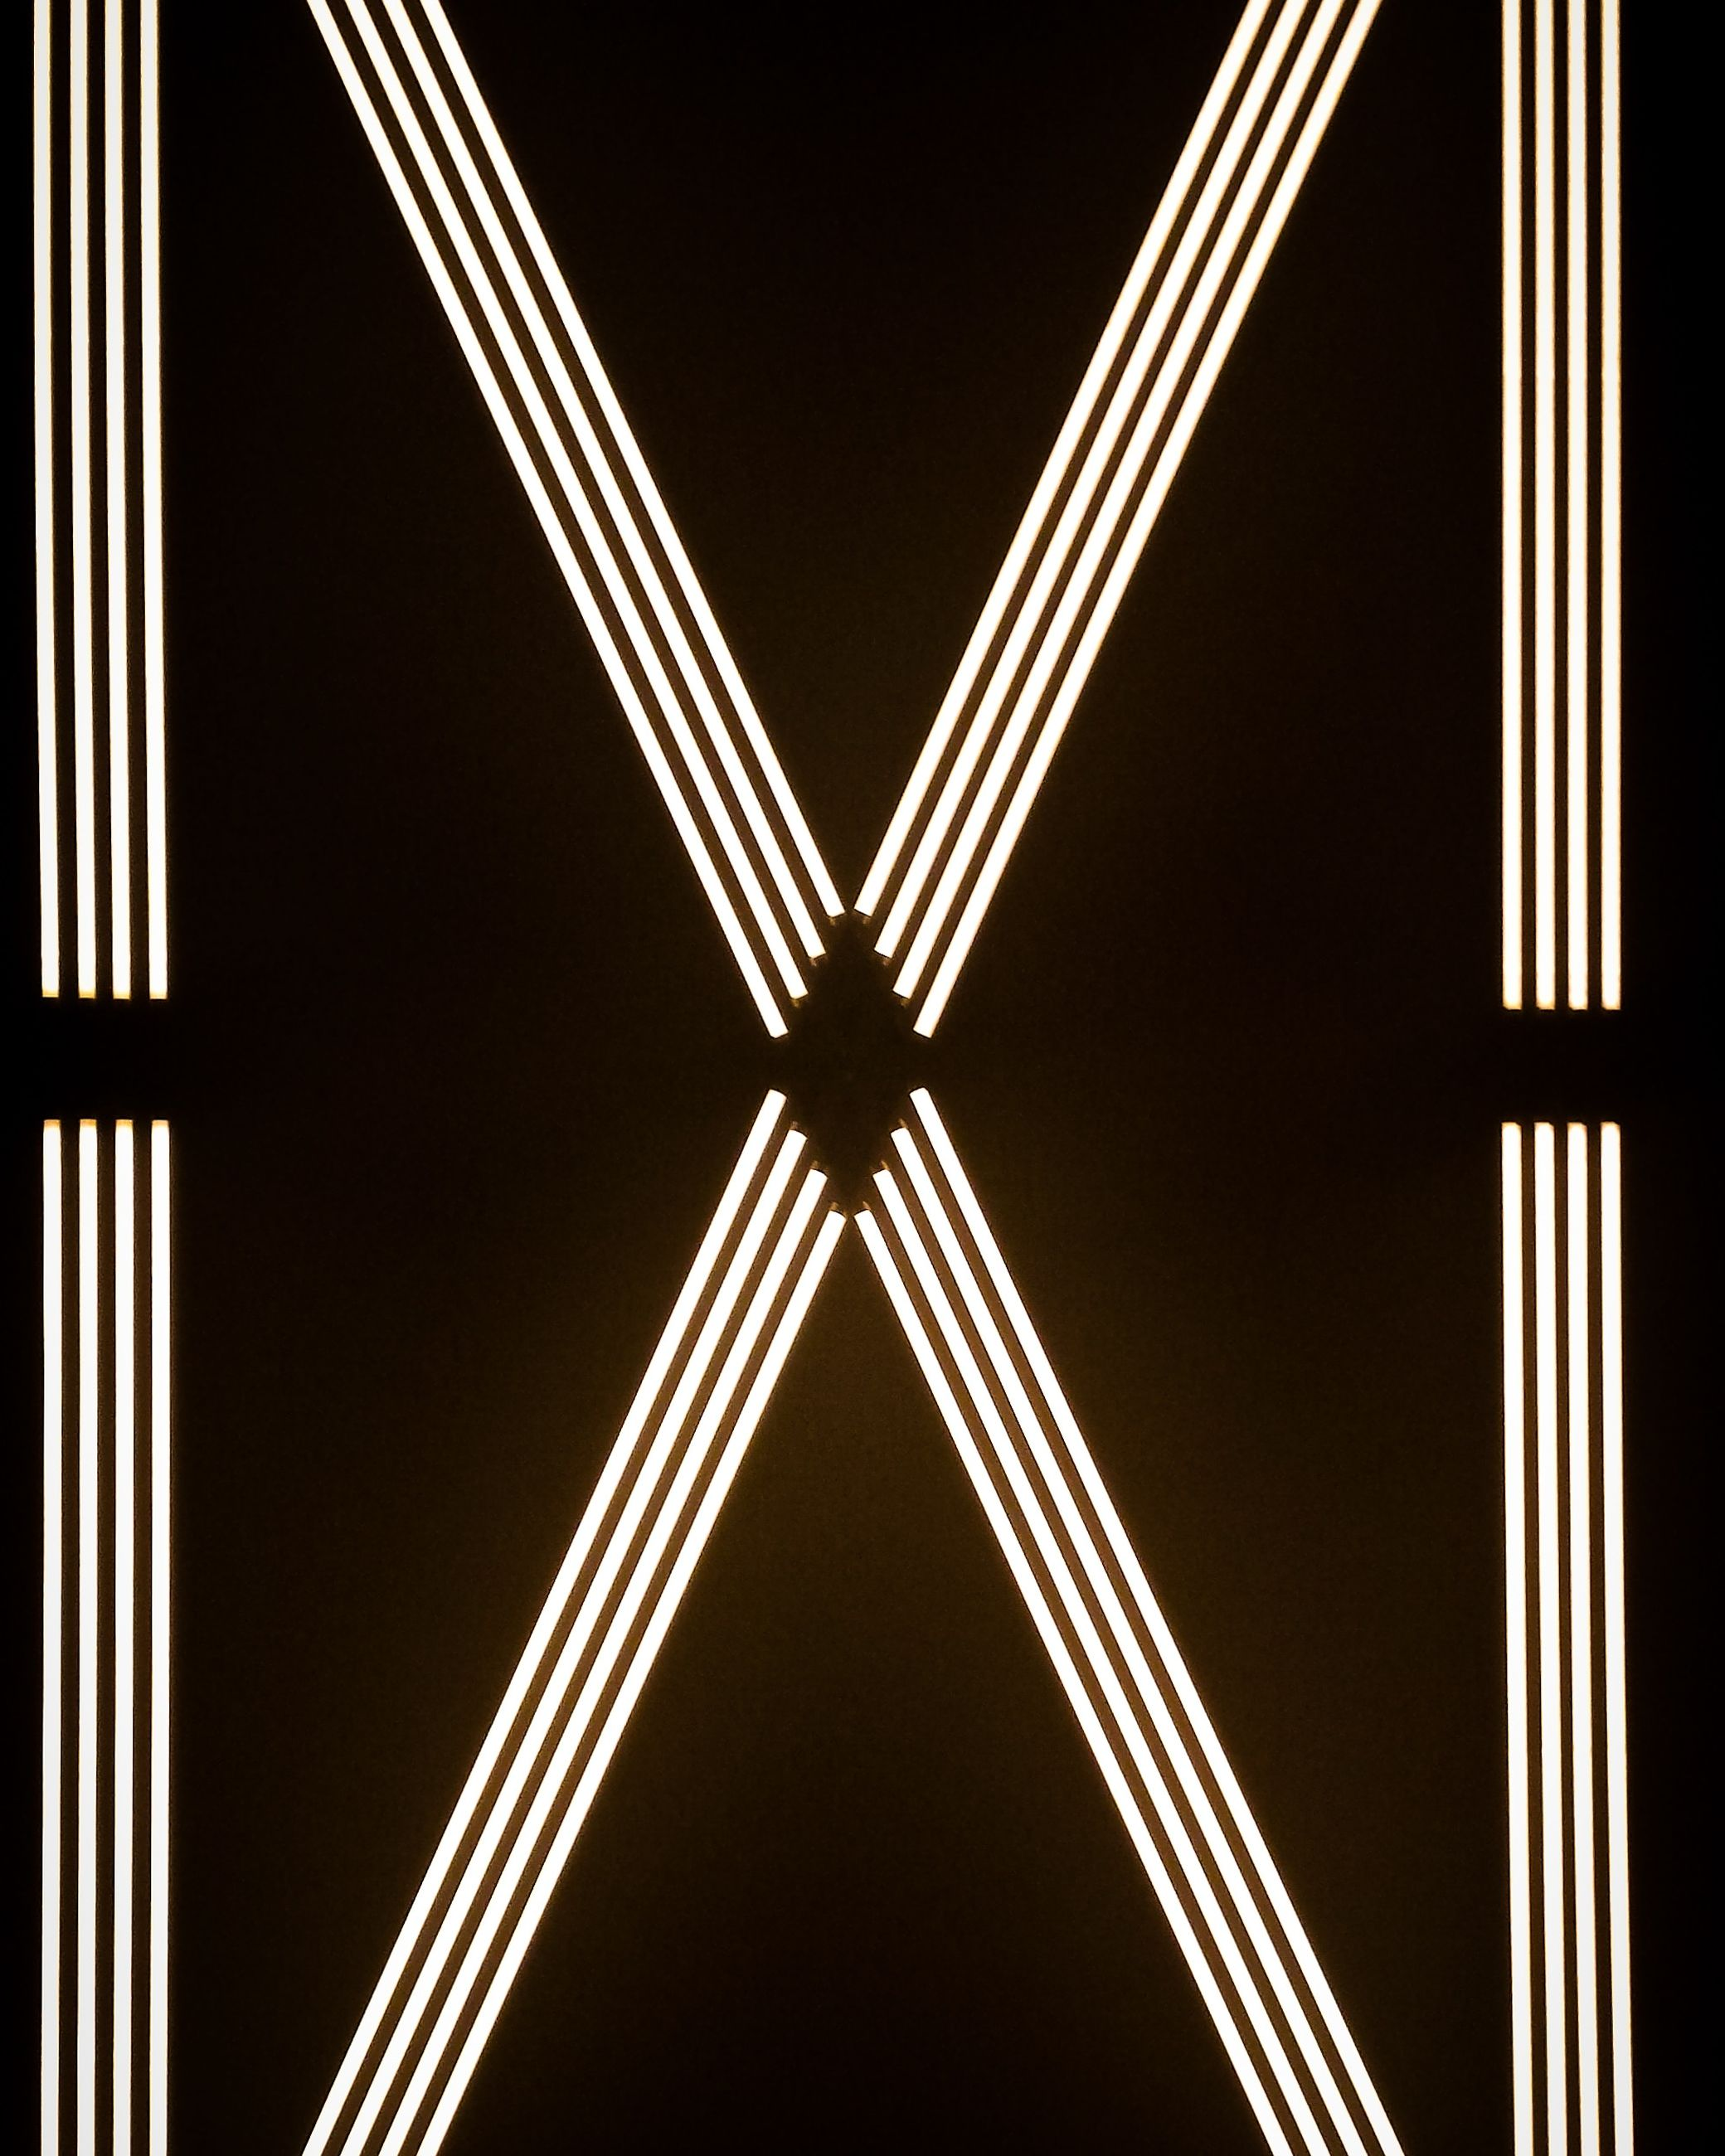 pattern, indoors, metal, no people, full frame, close-up, backgrounds, illuminated, lighting equipment, design, black background, architecture, abstract, shape, glowing, built structure, symmetry, low angle view, striped, night, ceiling, directly below, steel